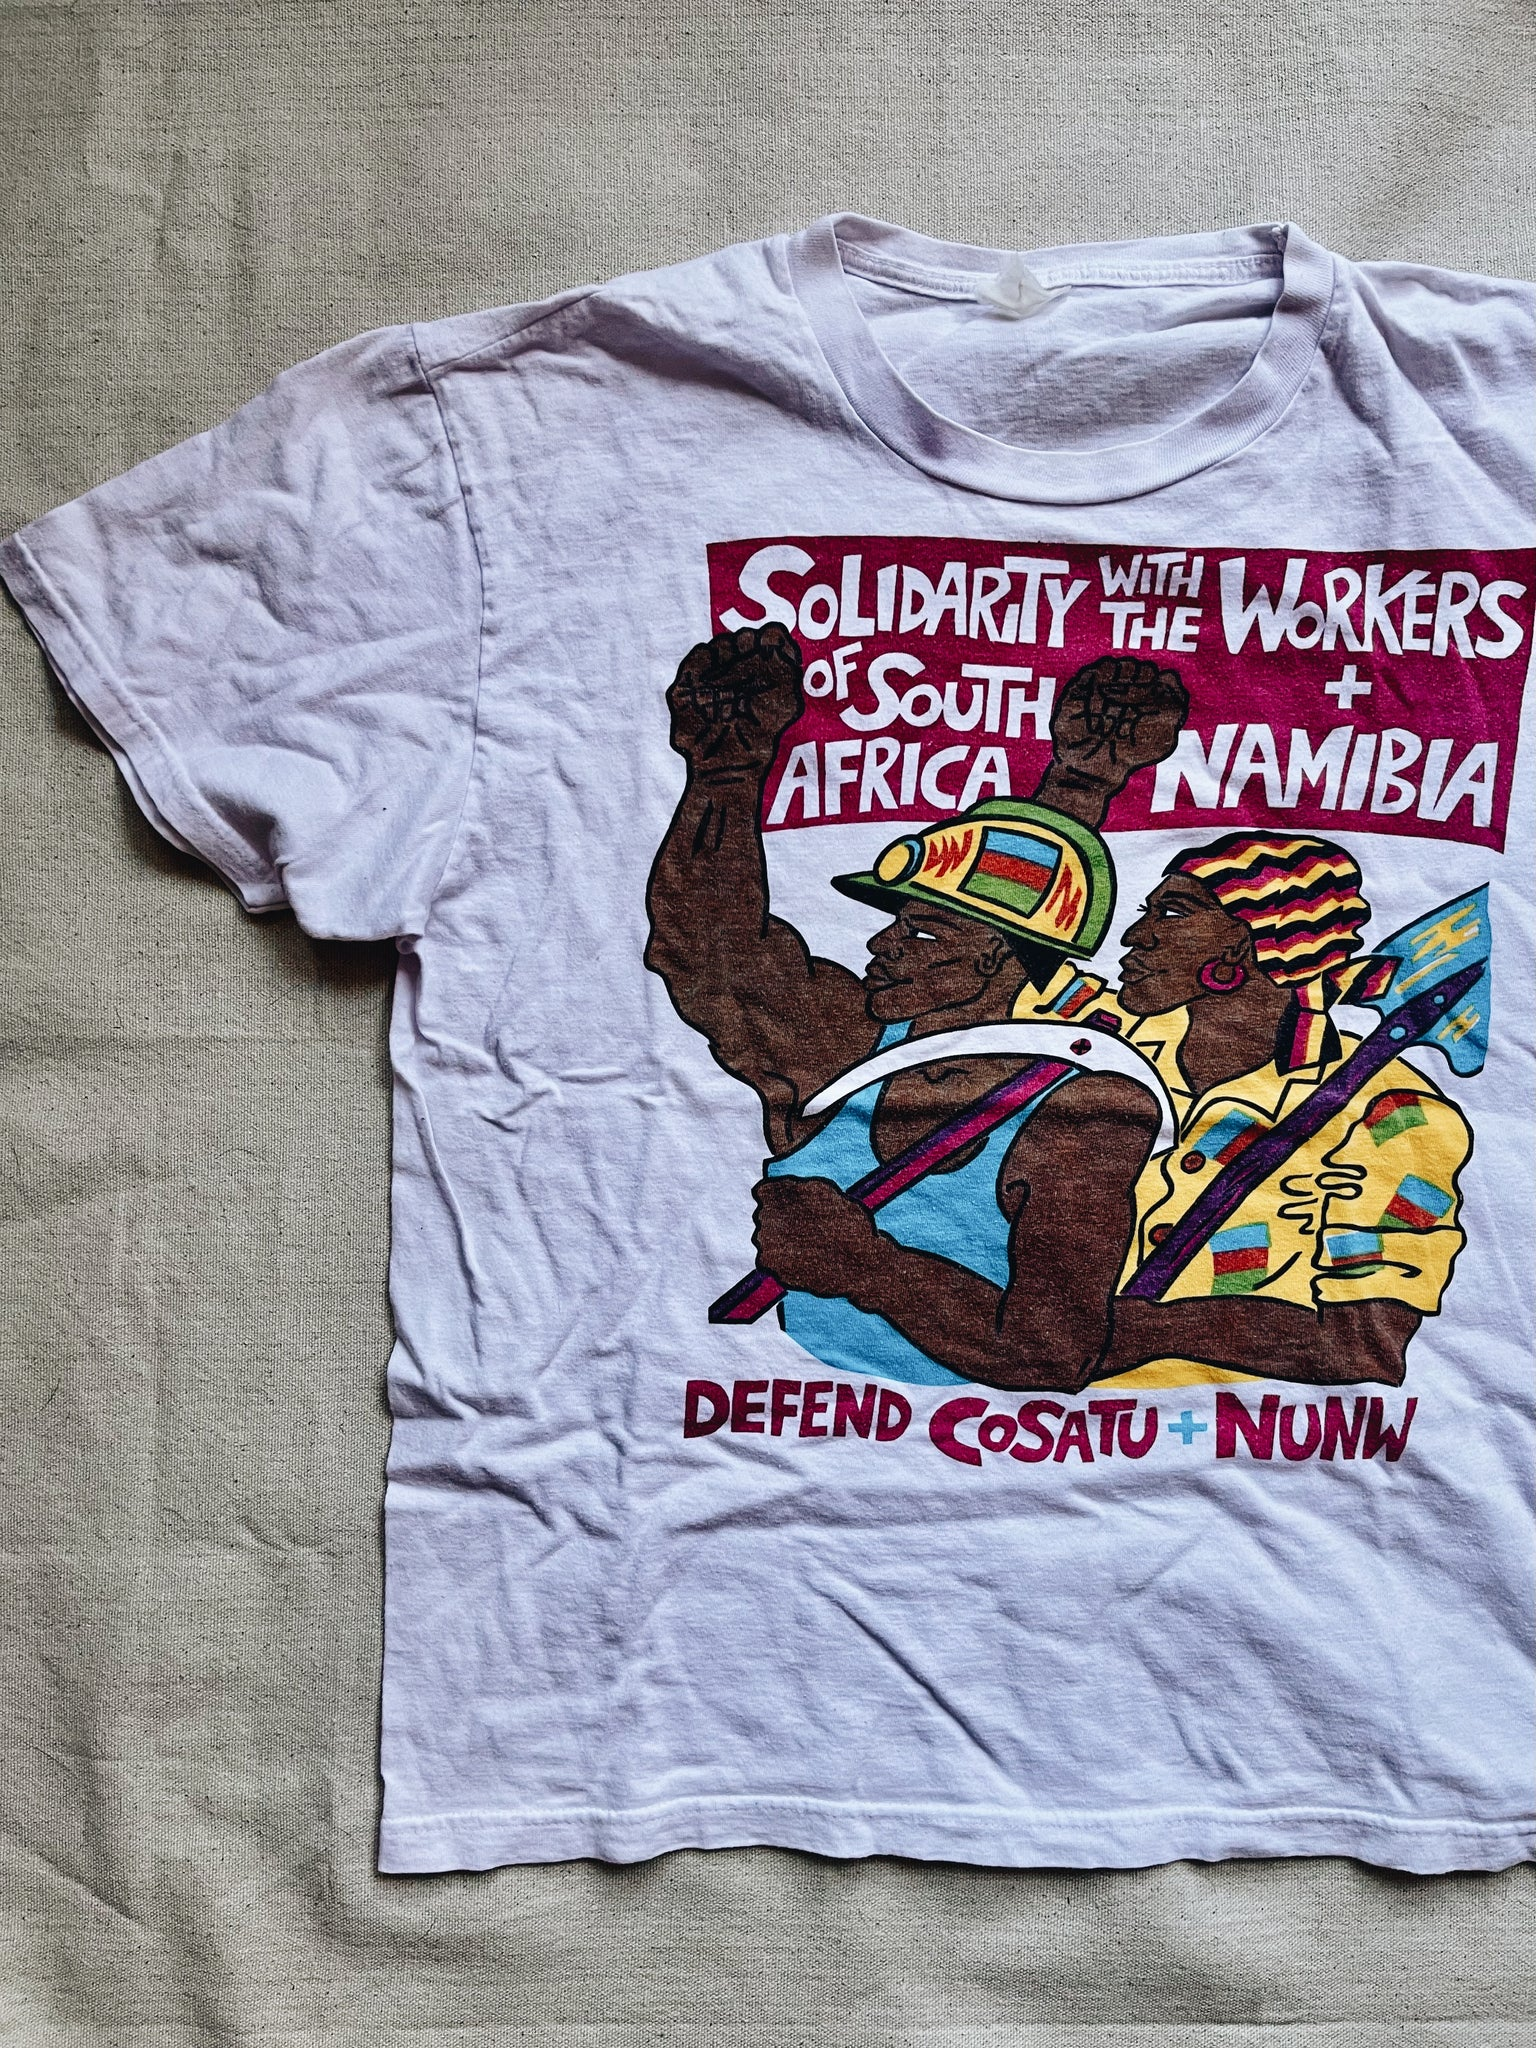 Vintage Rare Anti-Apartheid T-Shirt (United Kingdom, 1988)